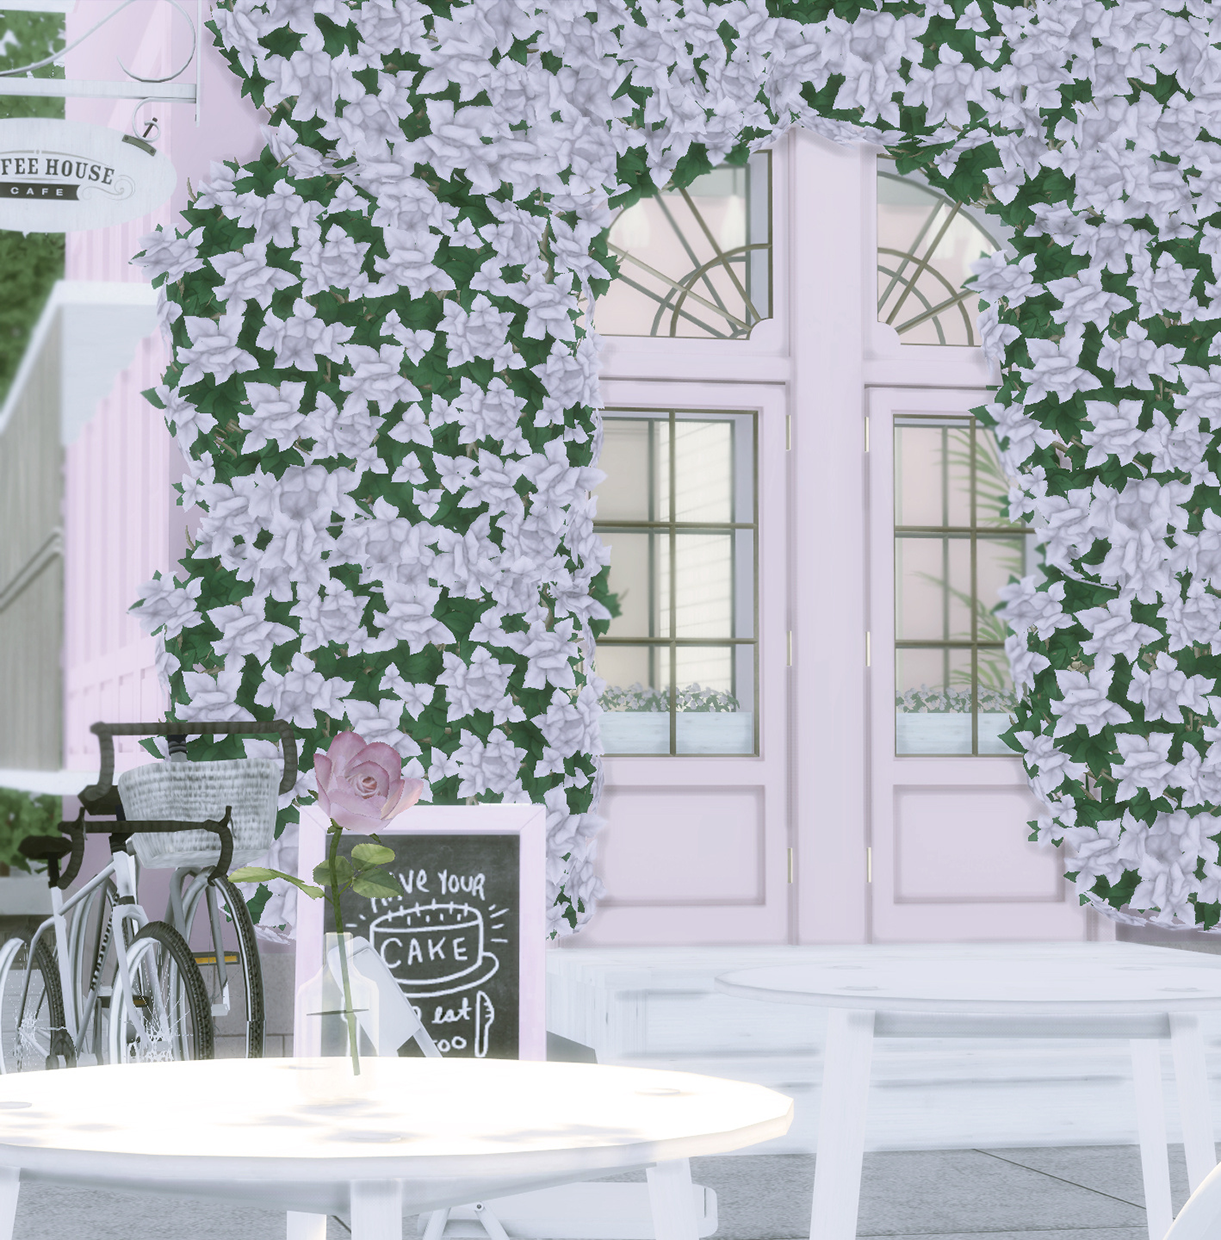 the_pink_pool_cafe by bellaisadellima